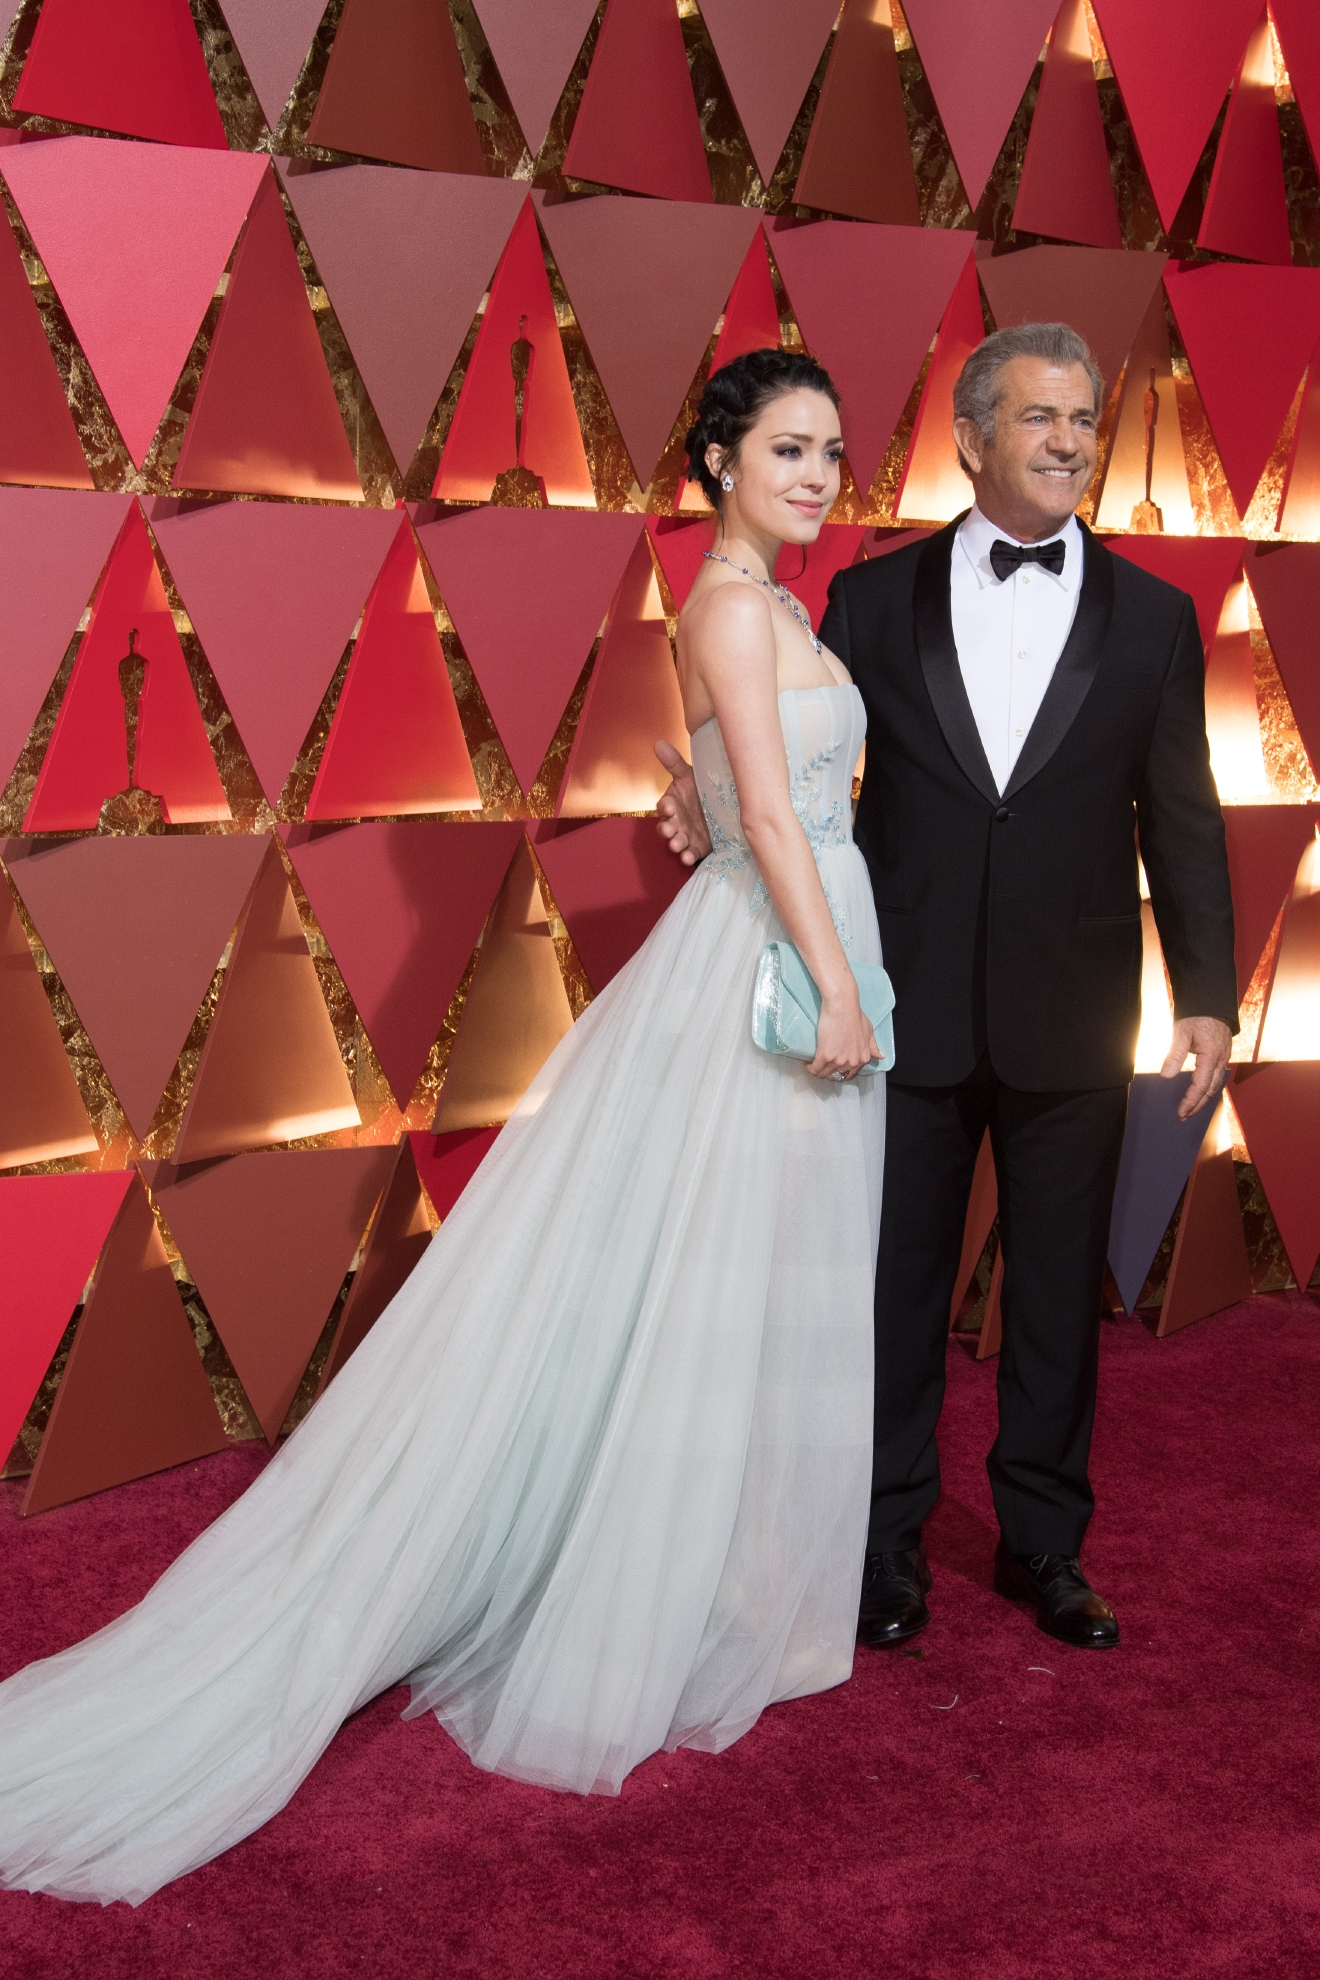 #26: Mel Gibson and Rosalind Ross know how to do red carpet - it's essentially their job. They're good at playing it classic and safe (a shocker for Mel Gibson!). (Image: AMPAS)